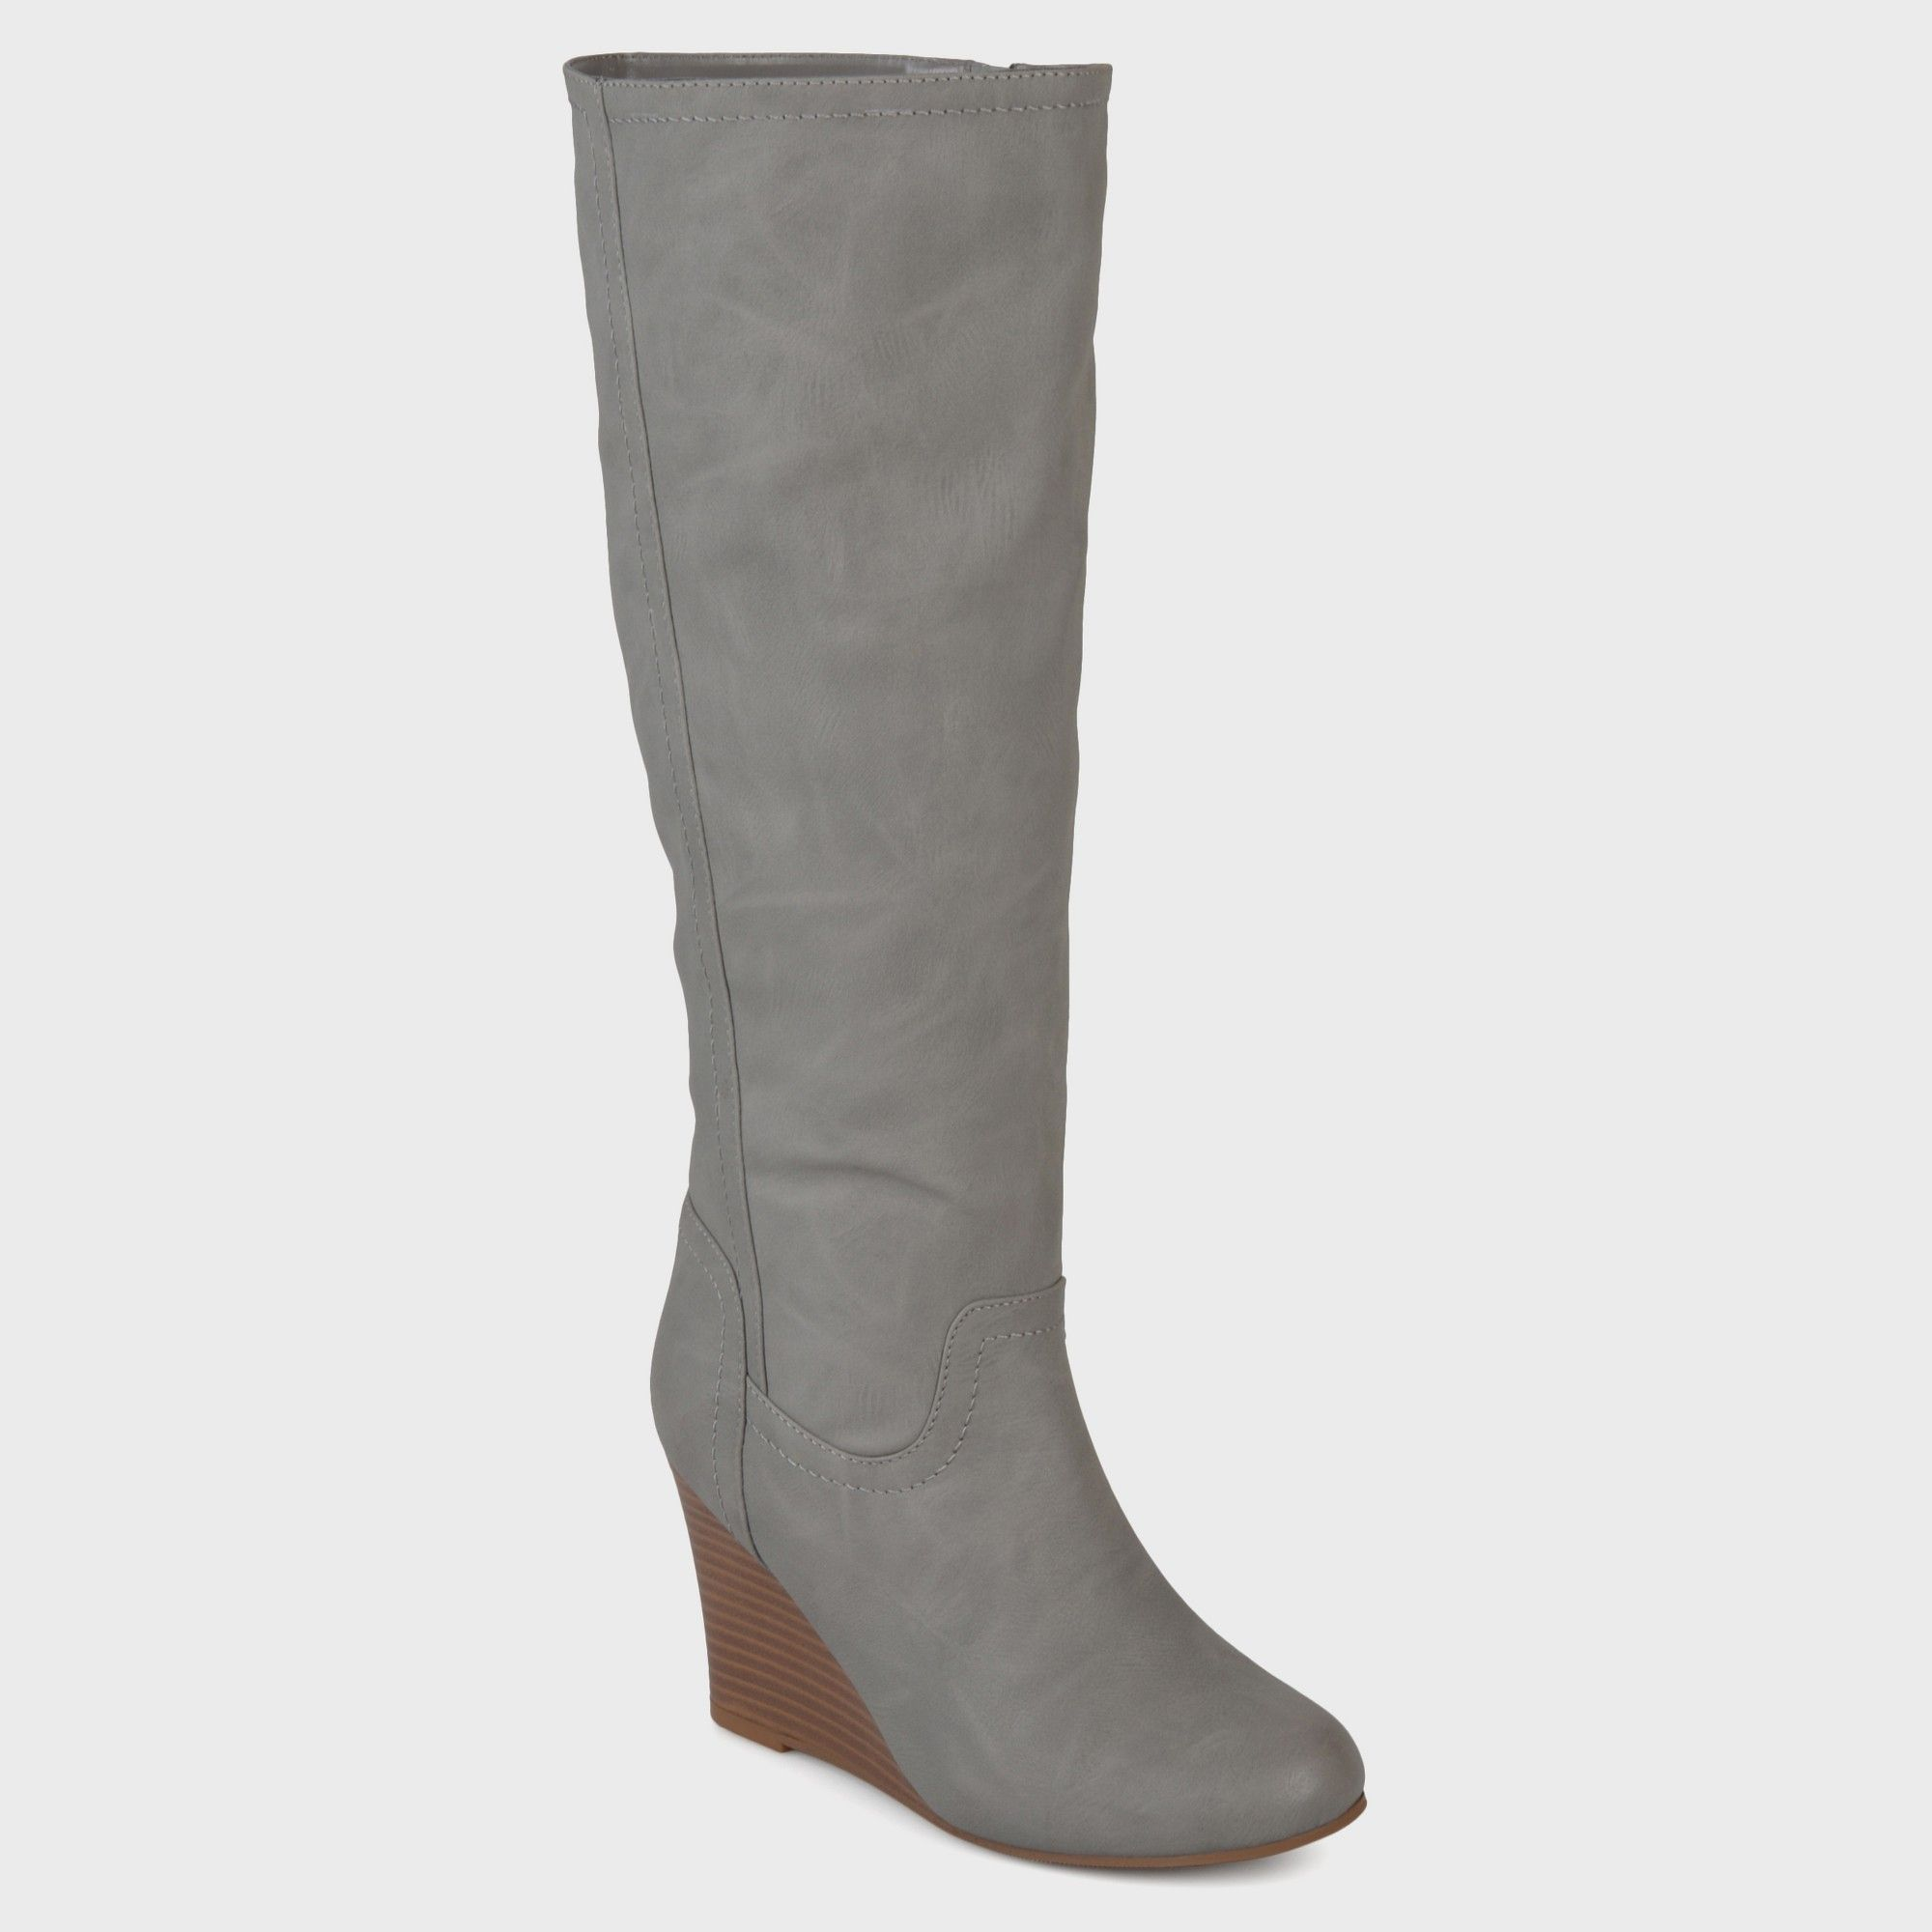 Women s Journee Collection Langly Round Toe Mid calf Wedge Boots